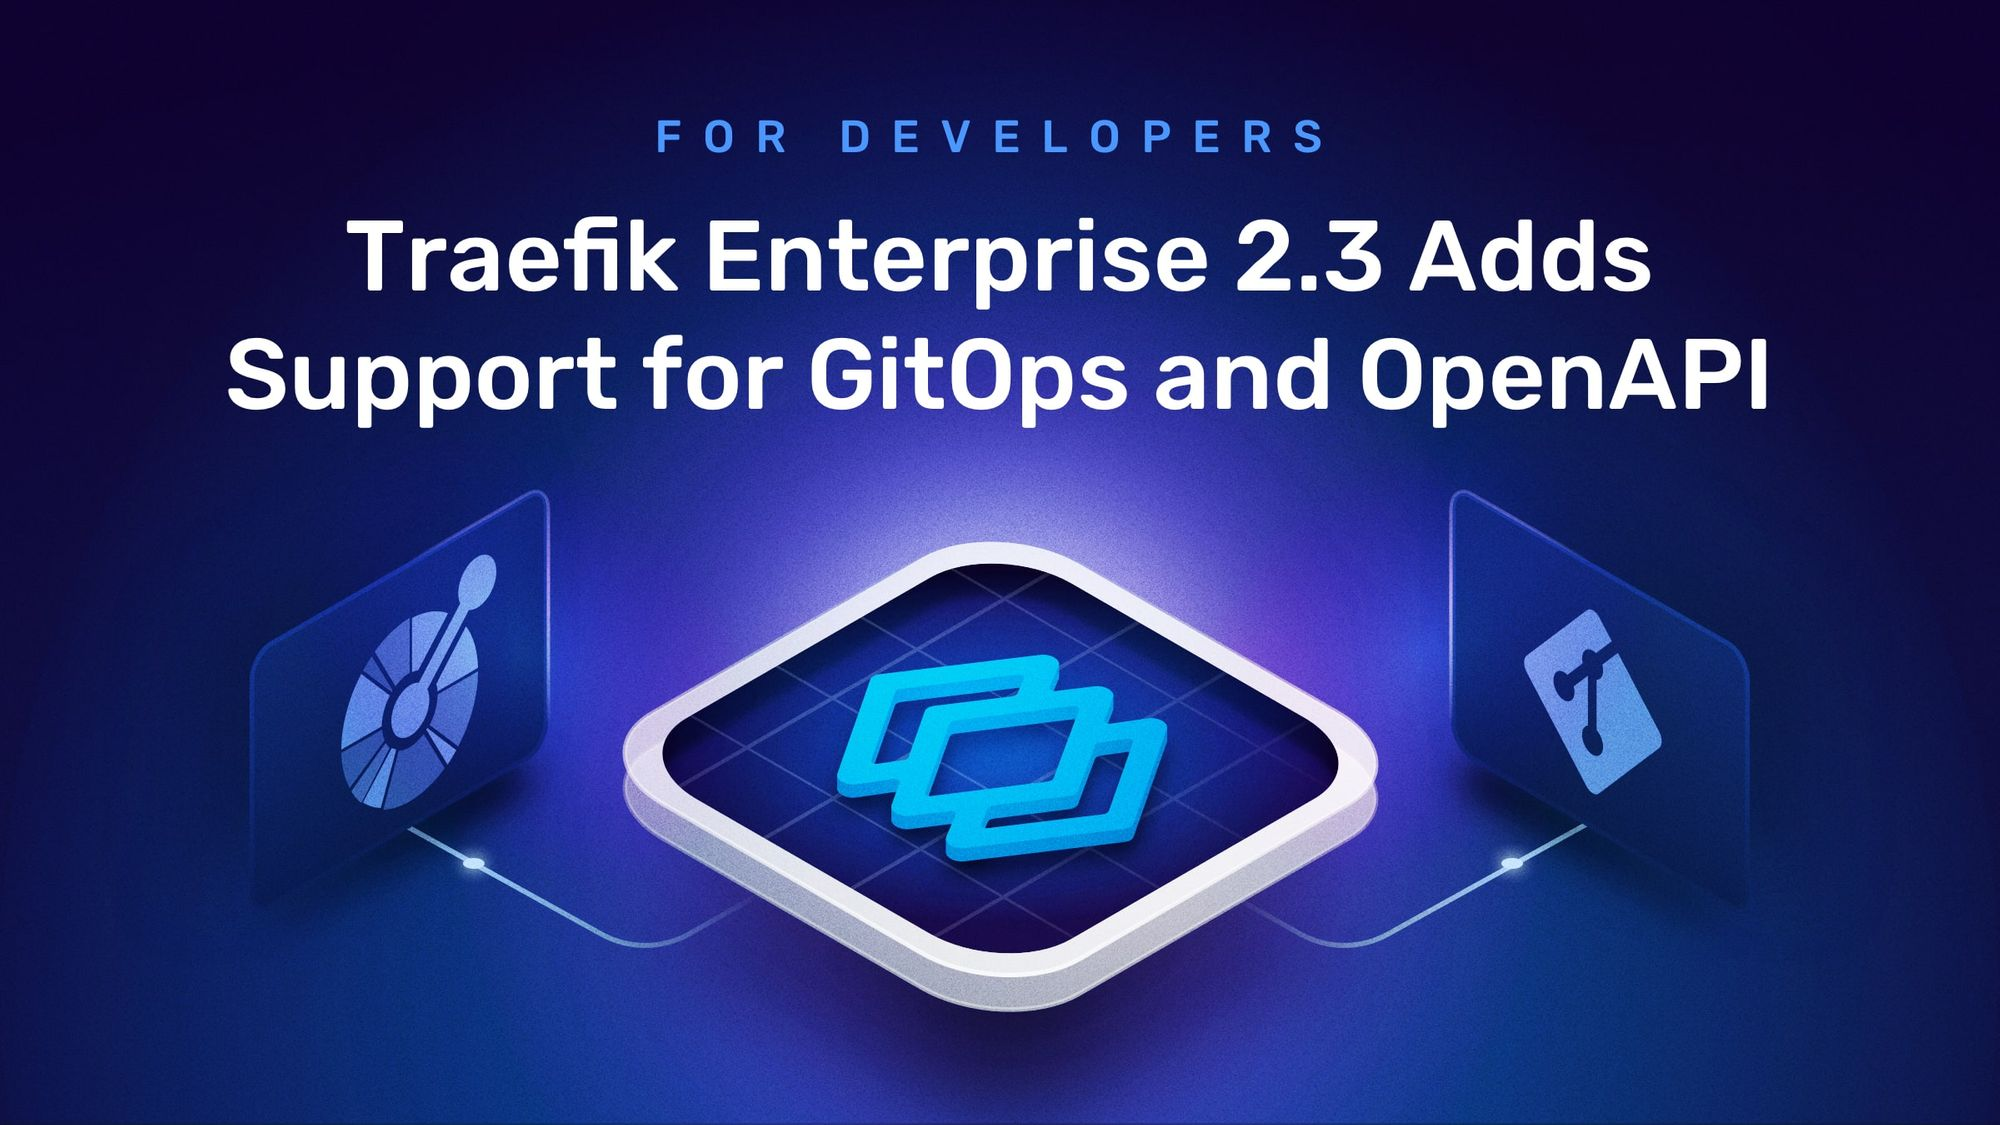 Traefik Enterprise 2.3 Adds Support for GitOps and OpenAPI